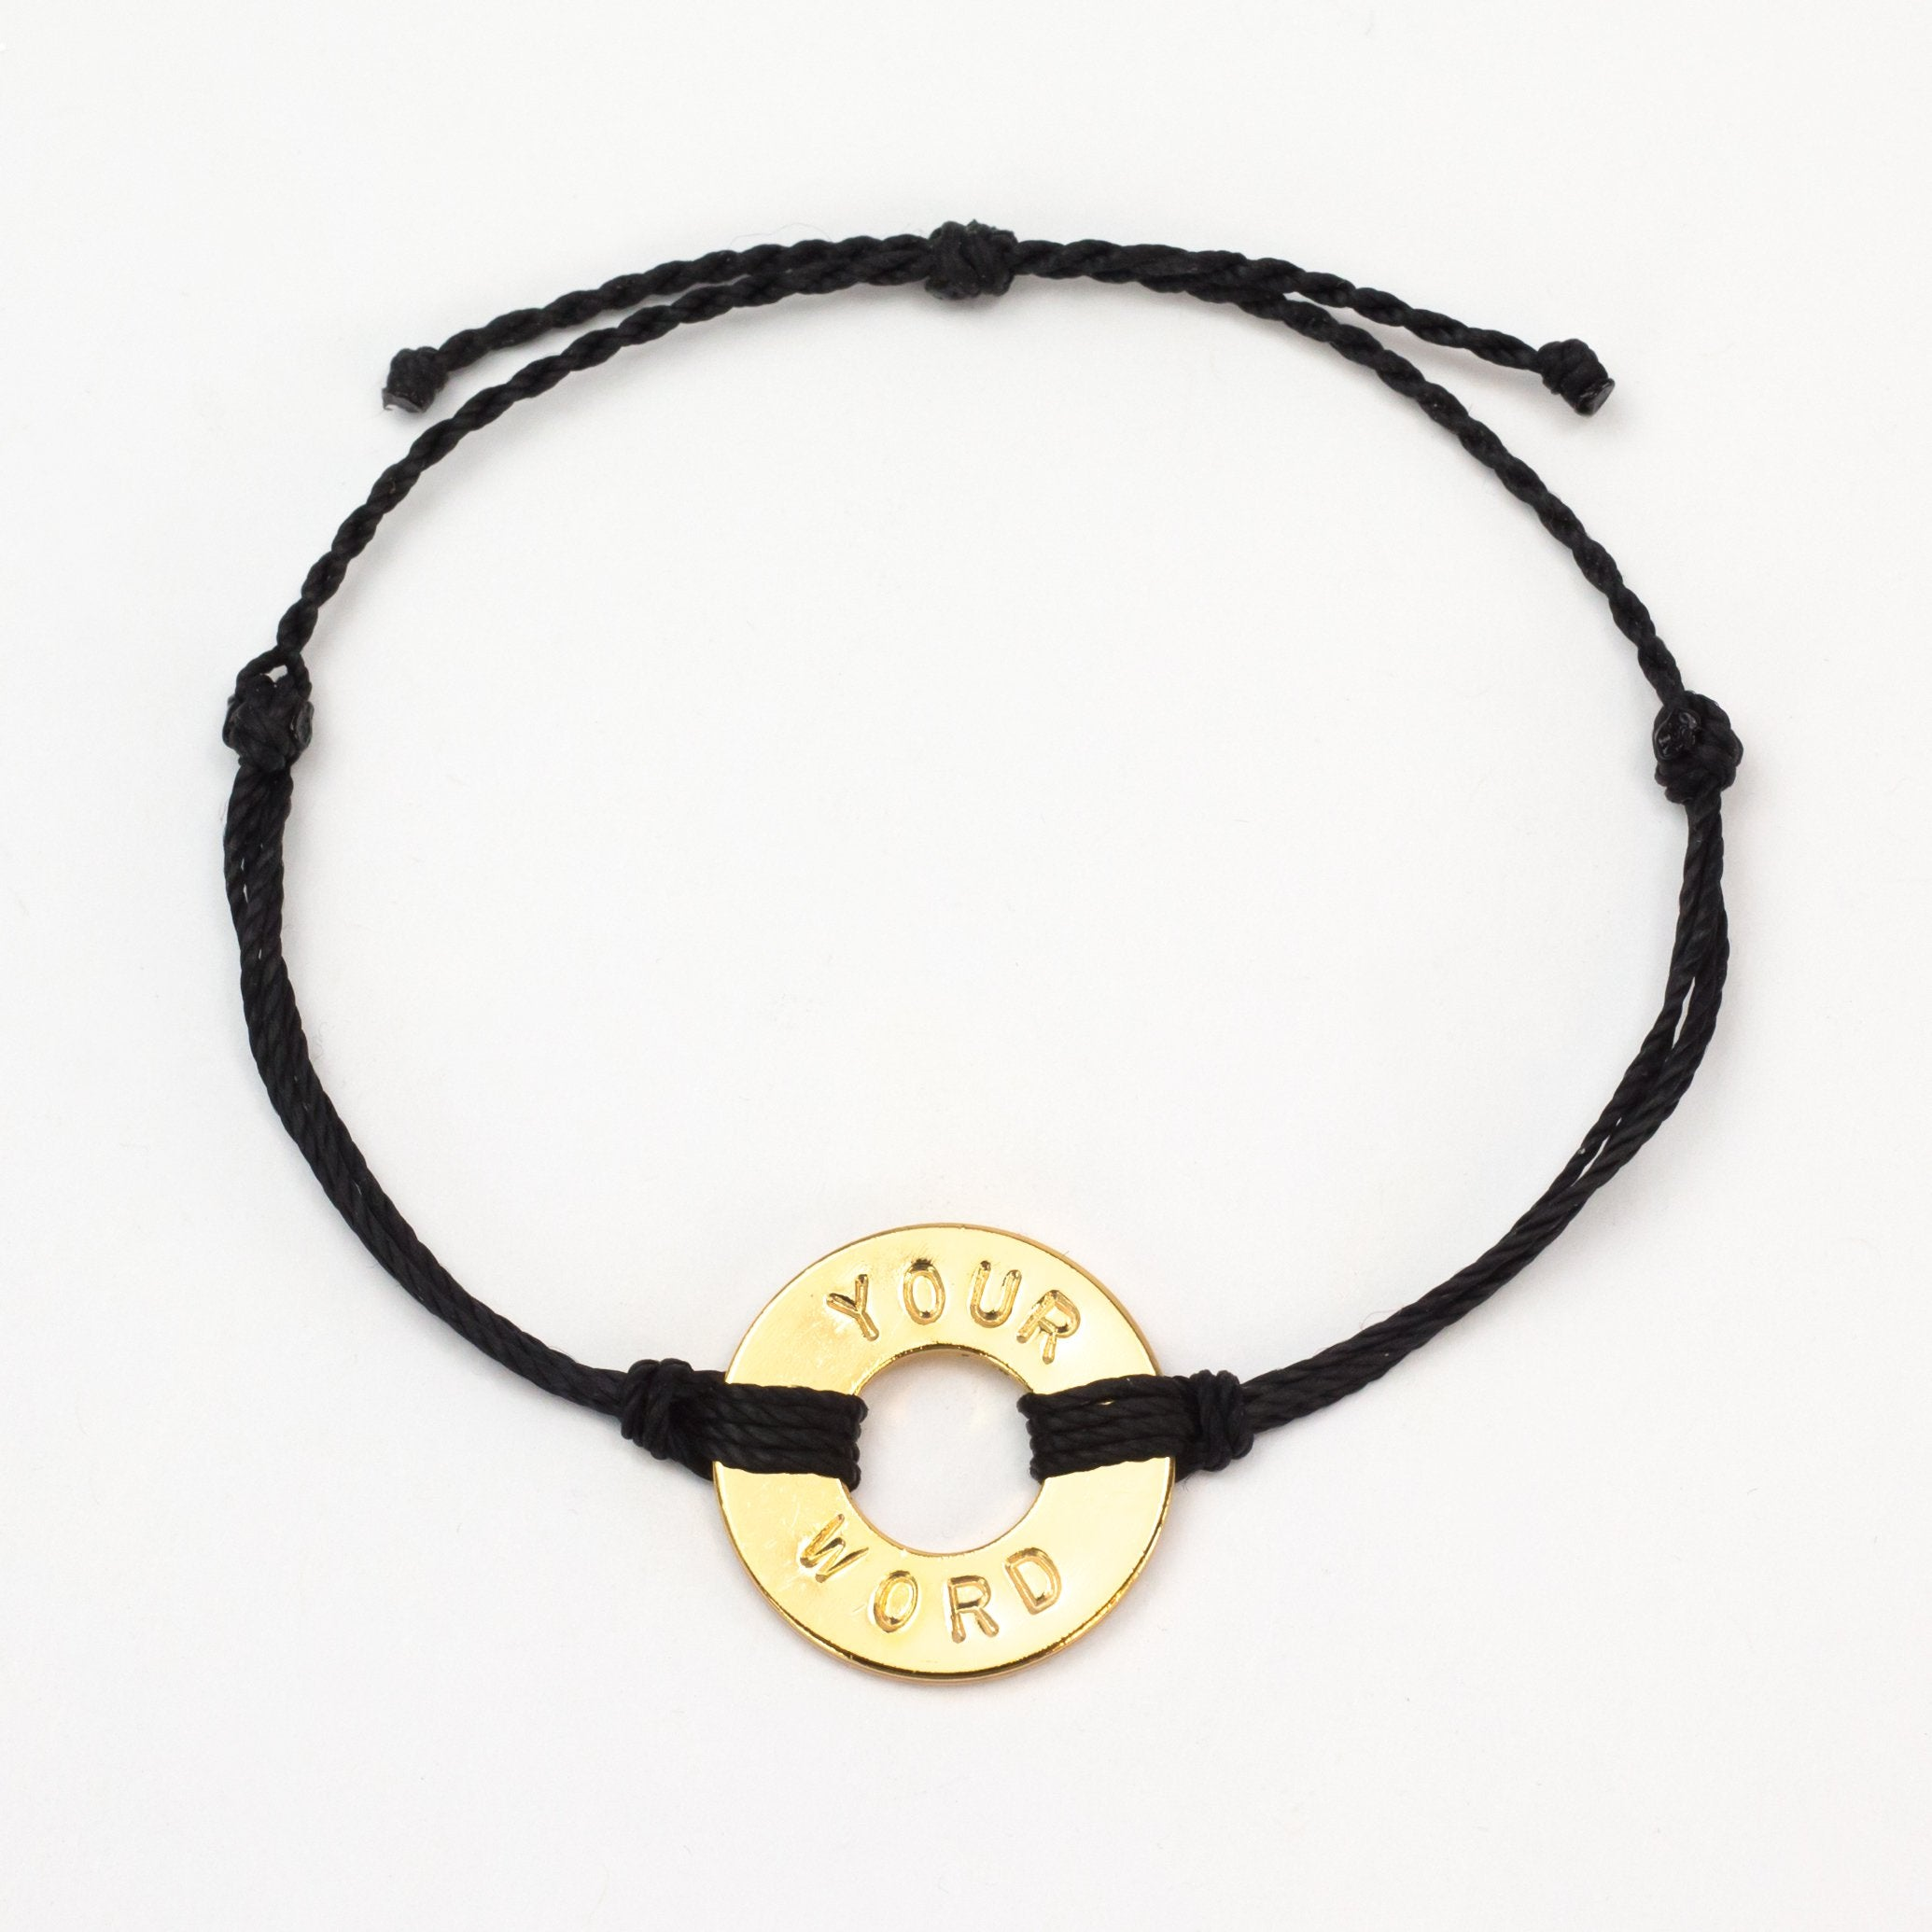 MyIntent Custom Twist Anklet Black String with Gold Token